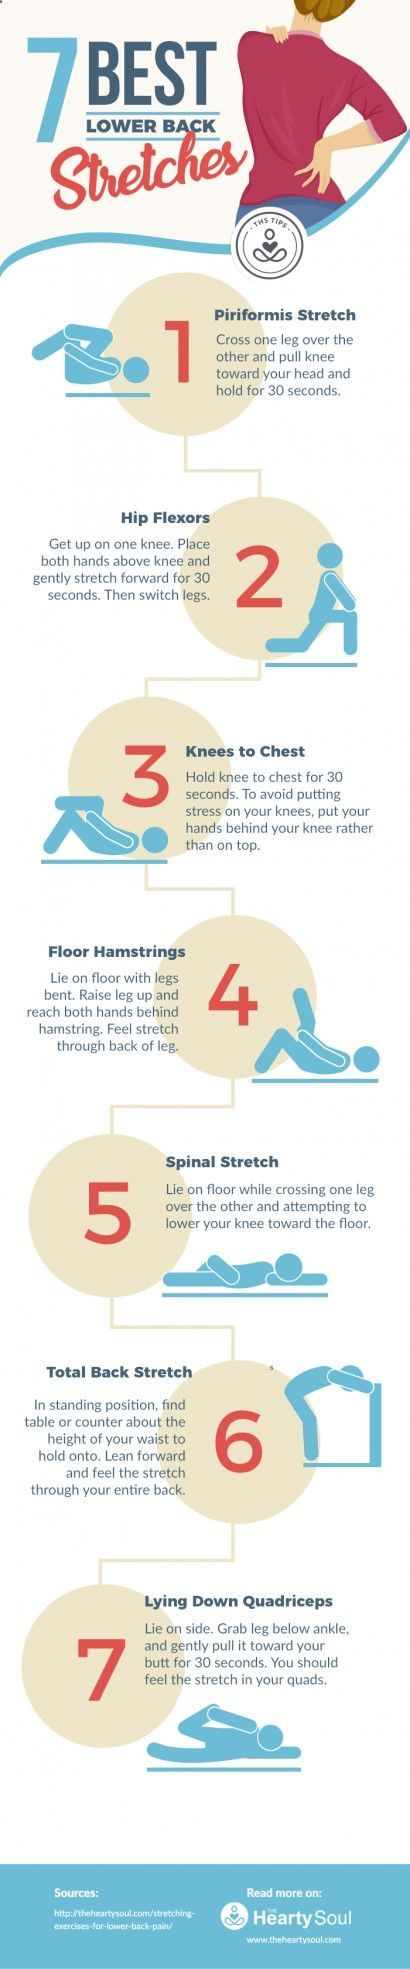 7 of the best lower back stretches for low back pain. Read on to learn more! (Lower Back Pain)